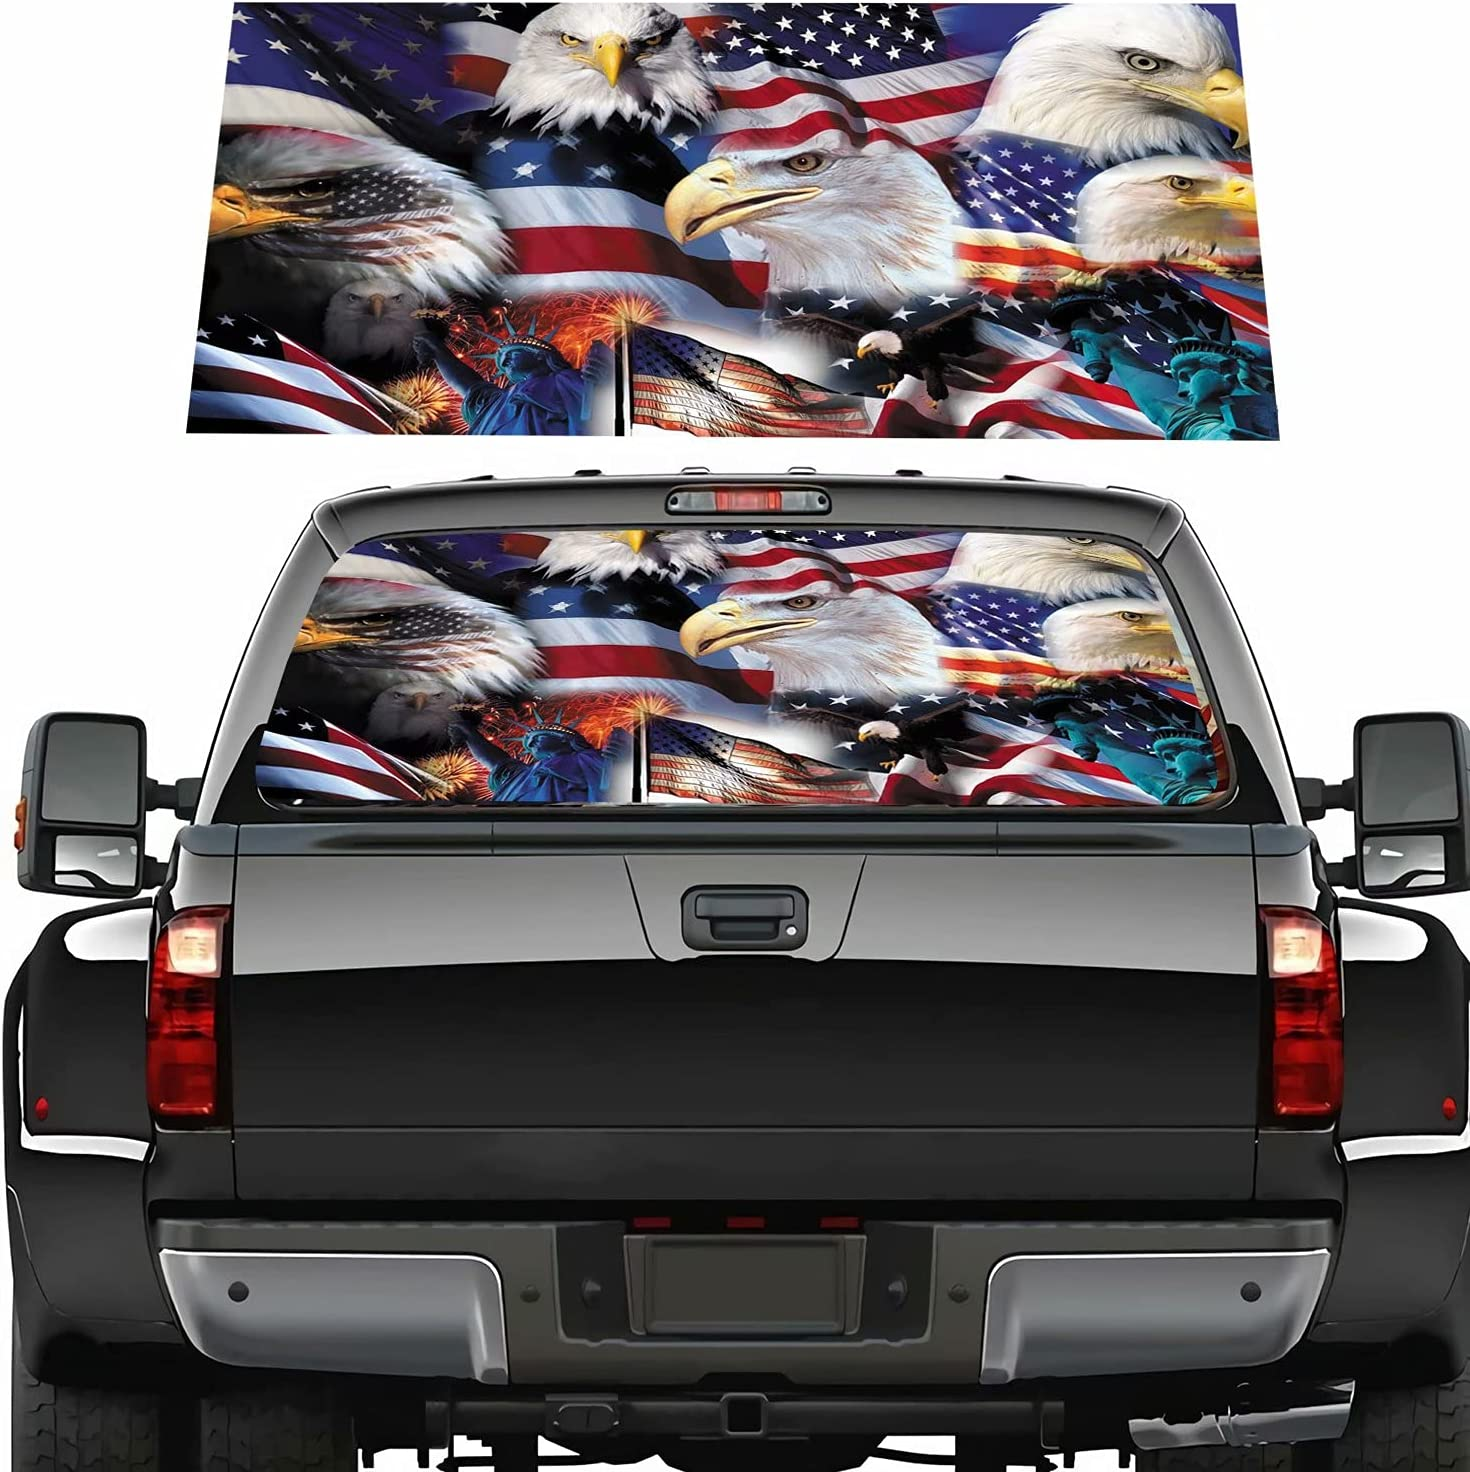 Patriotic Max 84% OFF American Outlet sale feature Car Rear Window Decal Graphic Wrap Independen